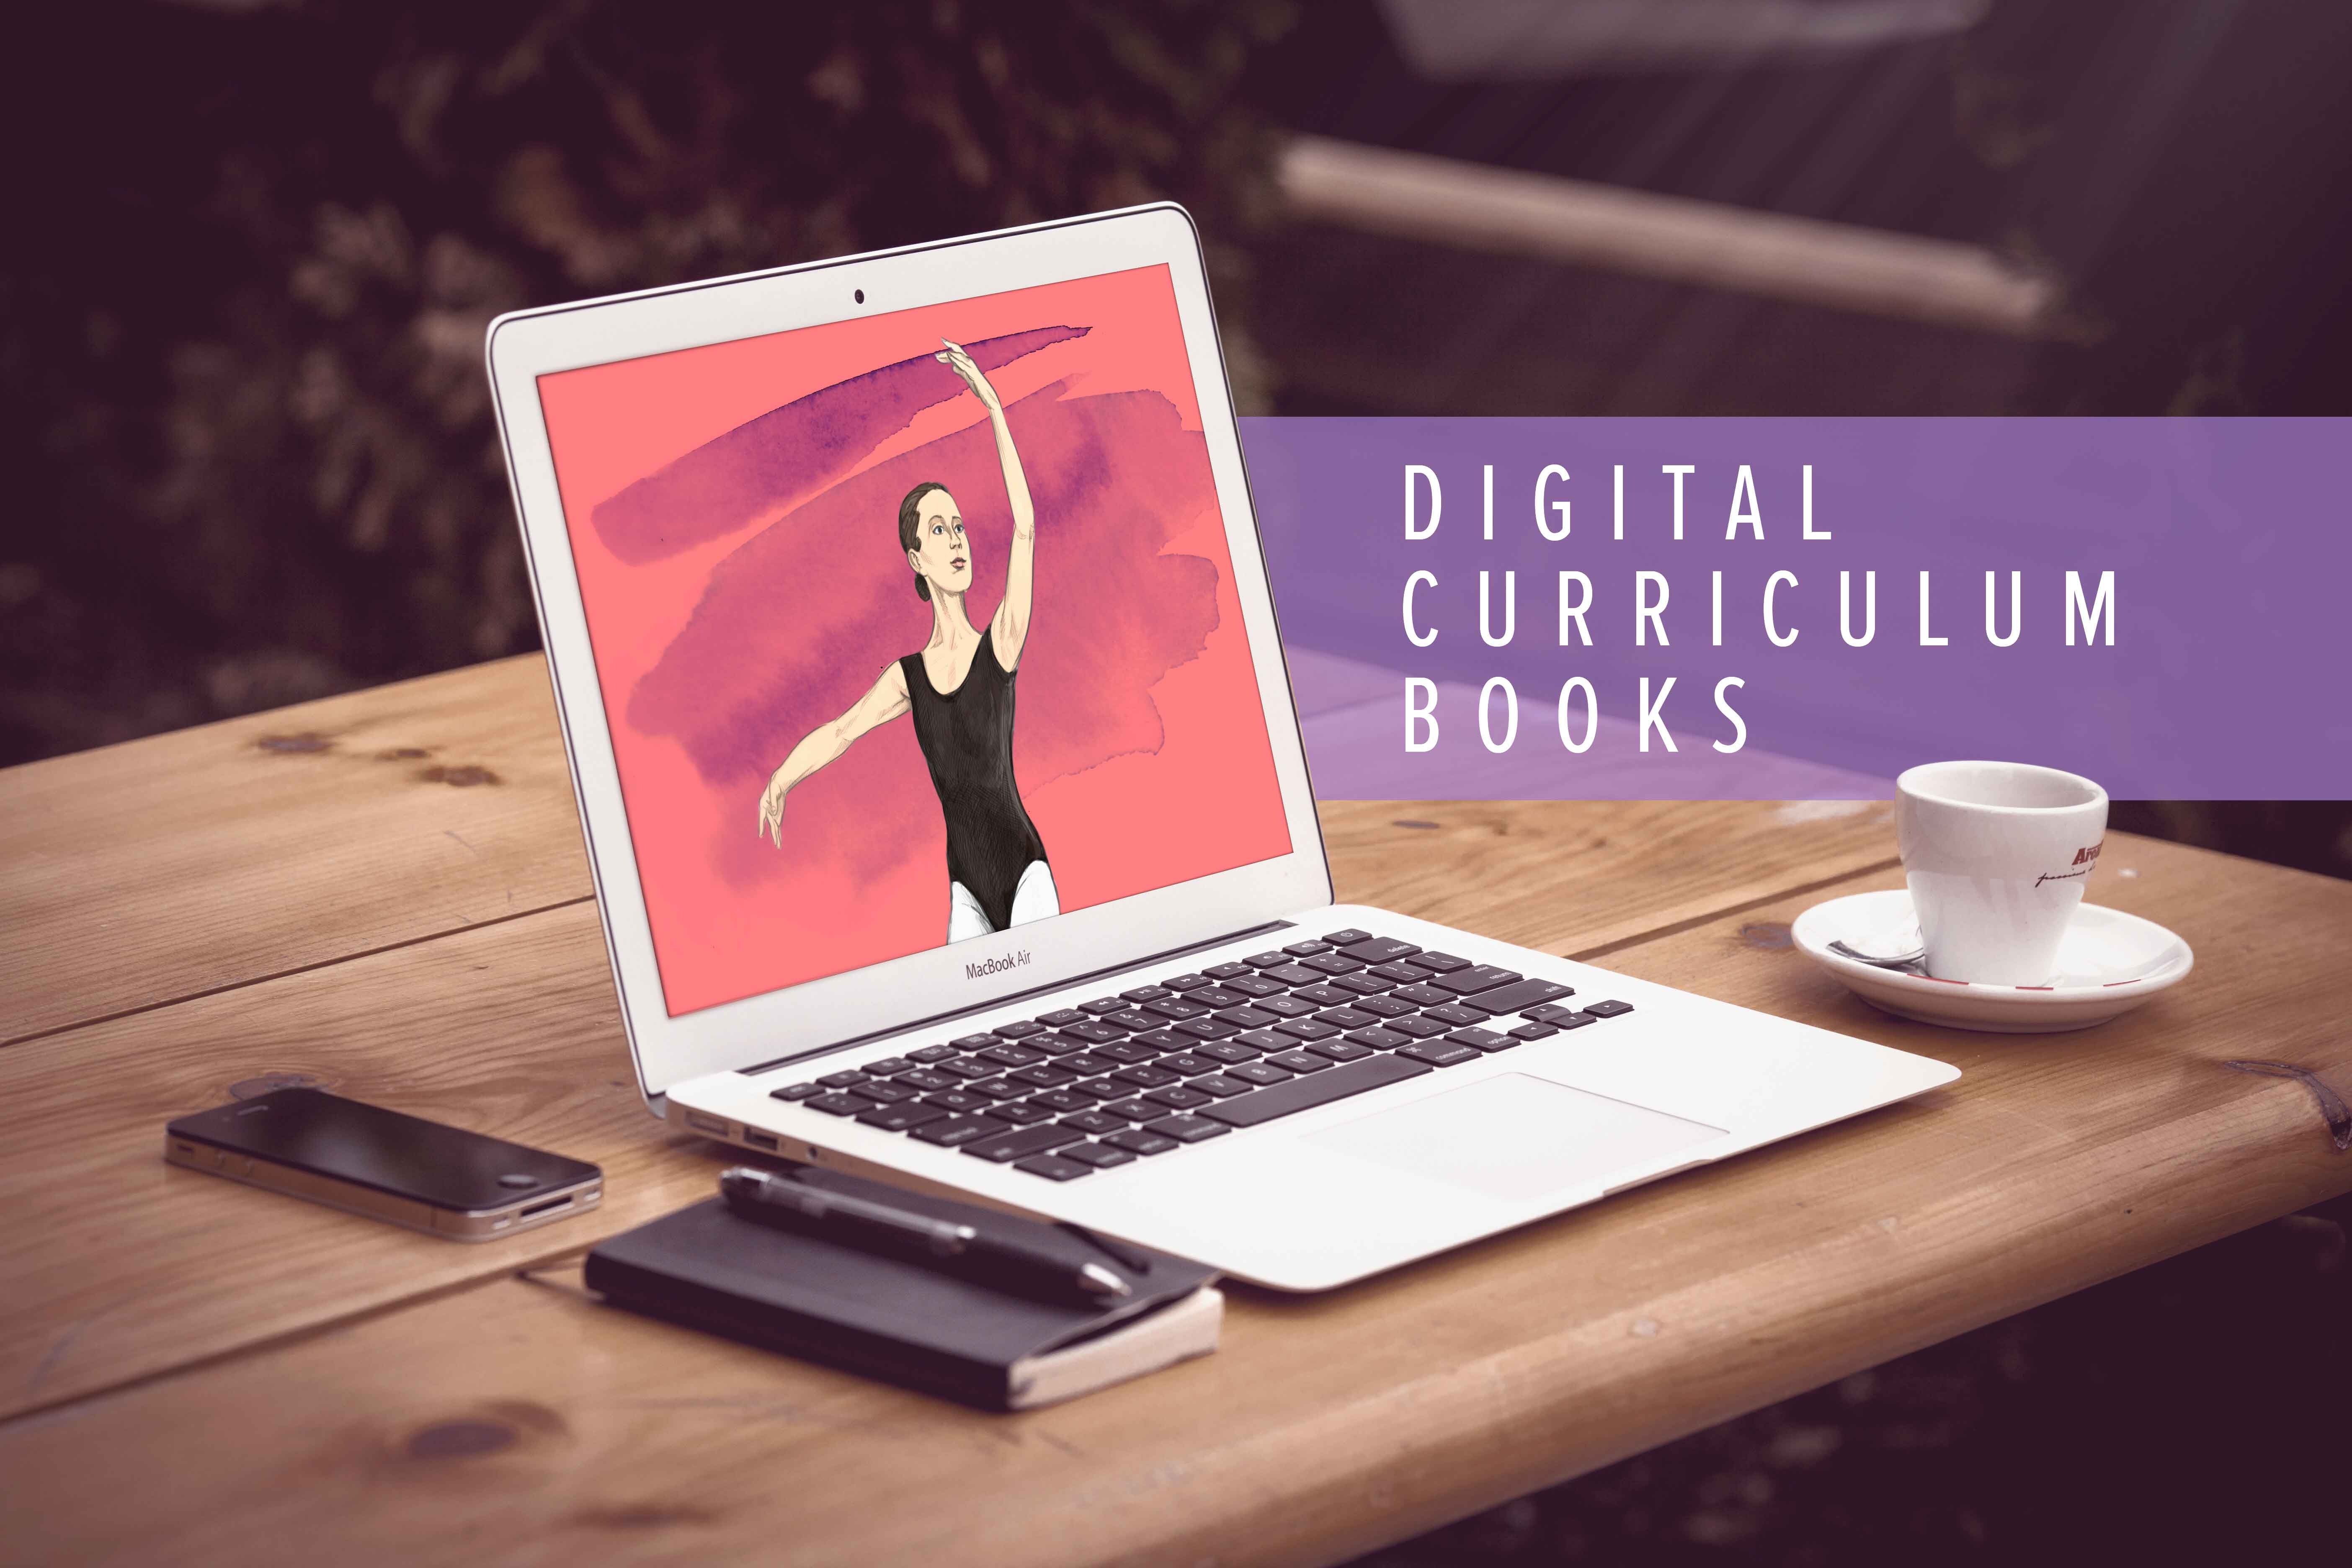 Digital Curriculum Books